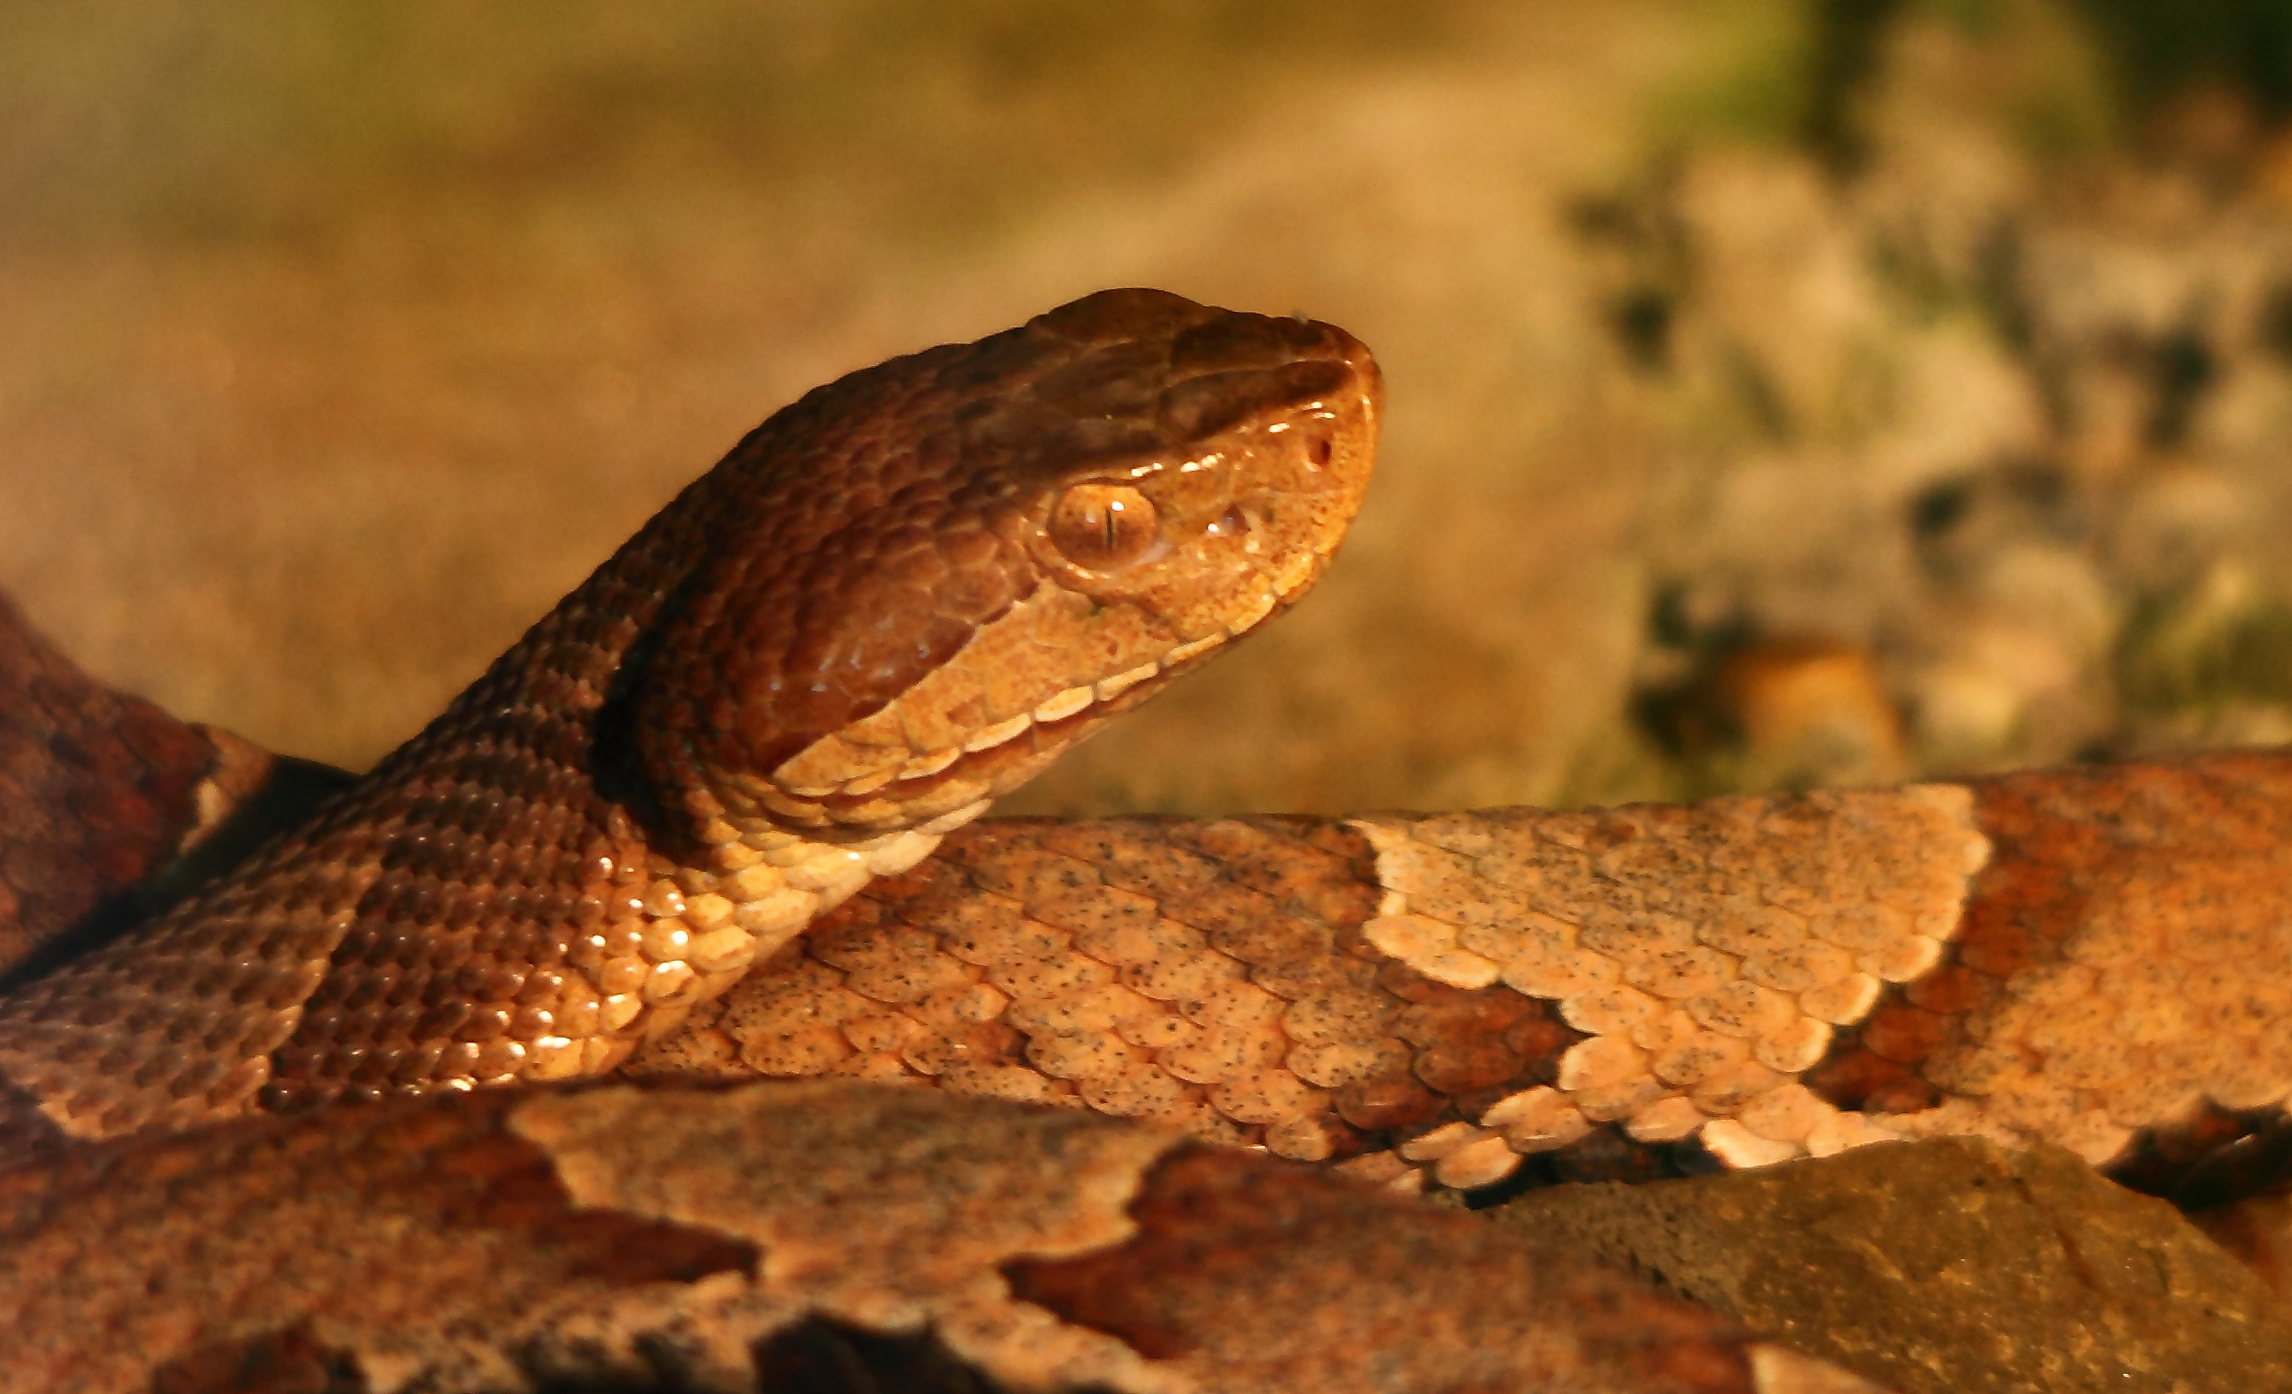 Parker County Man Bitten by 2 Copperheads in Matter of Seconds